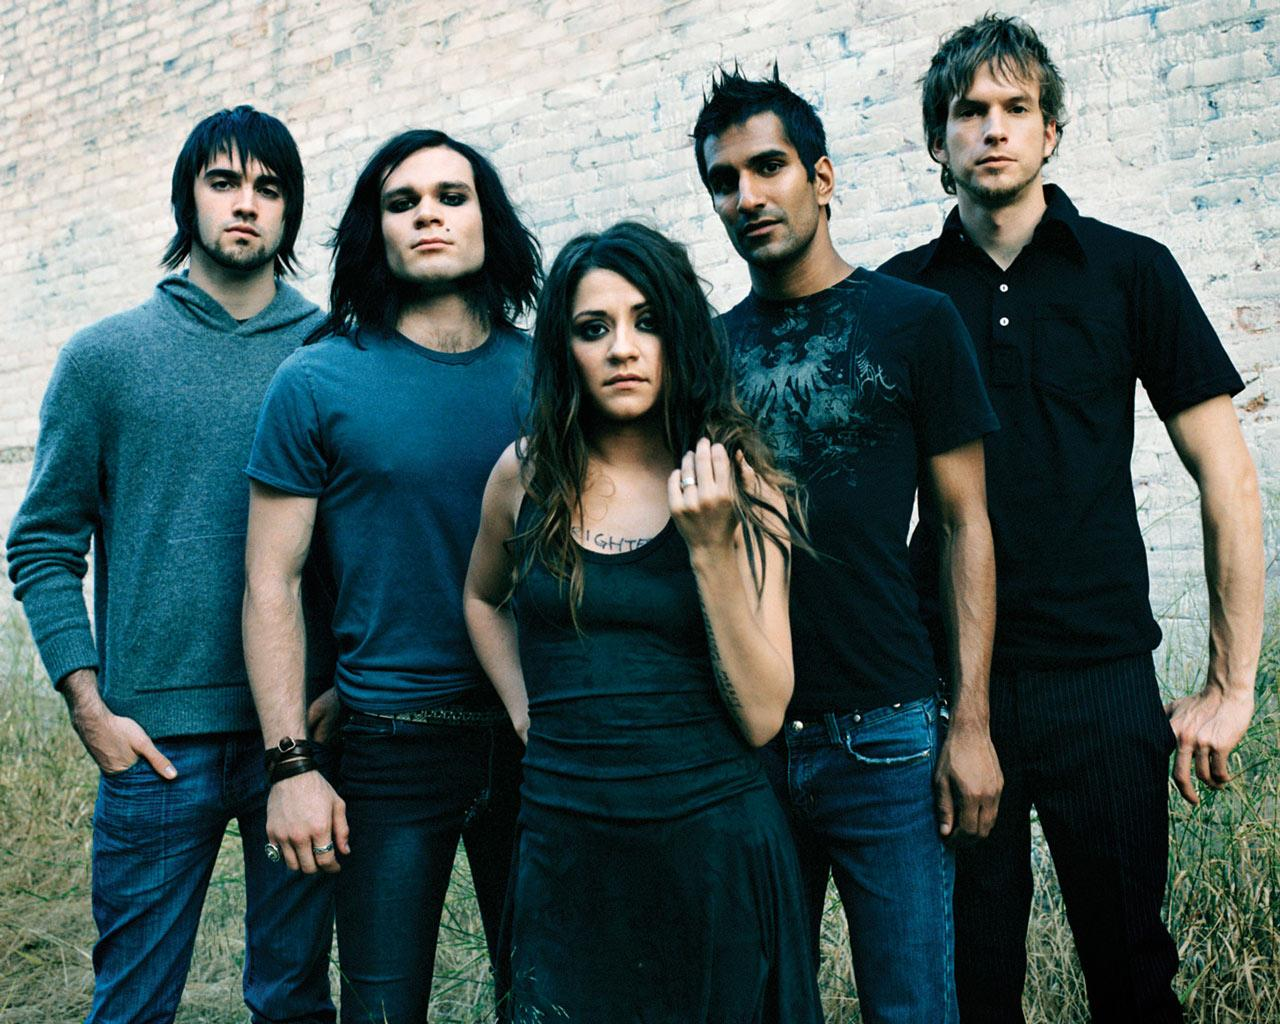 Flyleaf Wallpaper #2 1280 x 1024